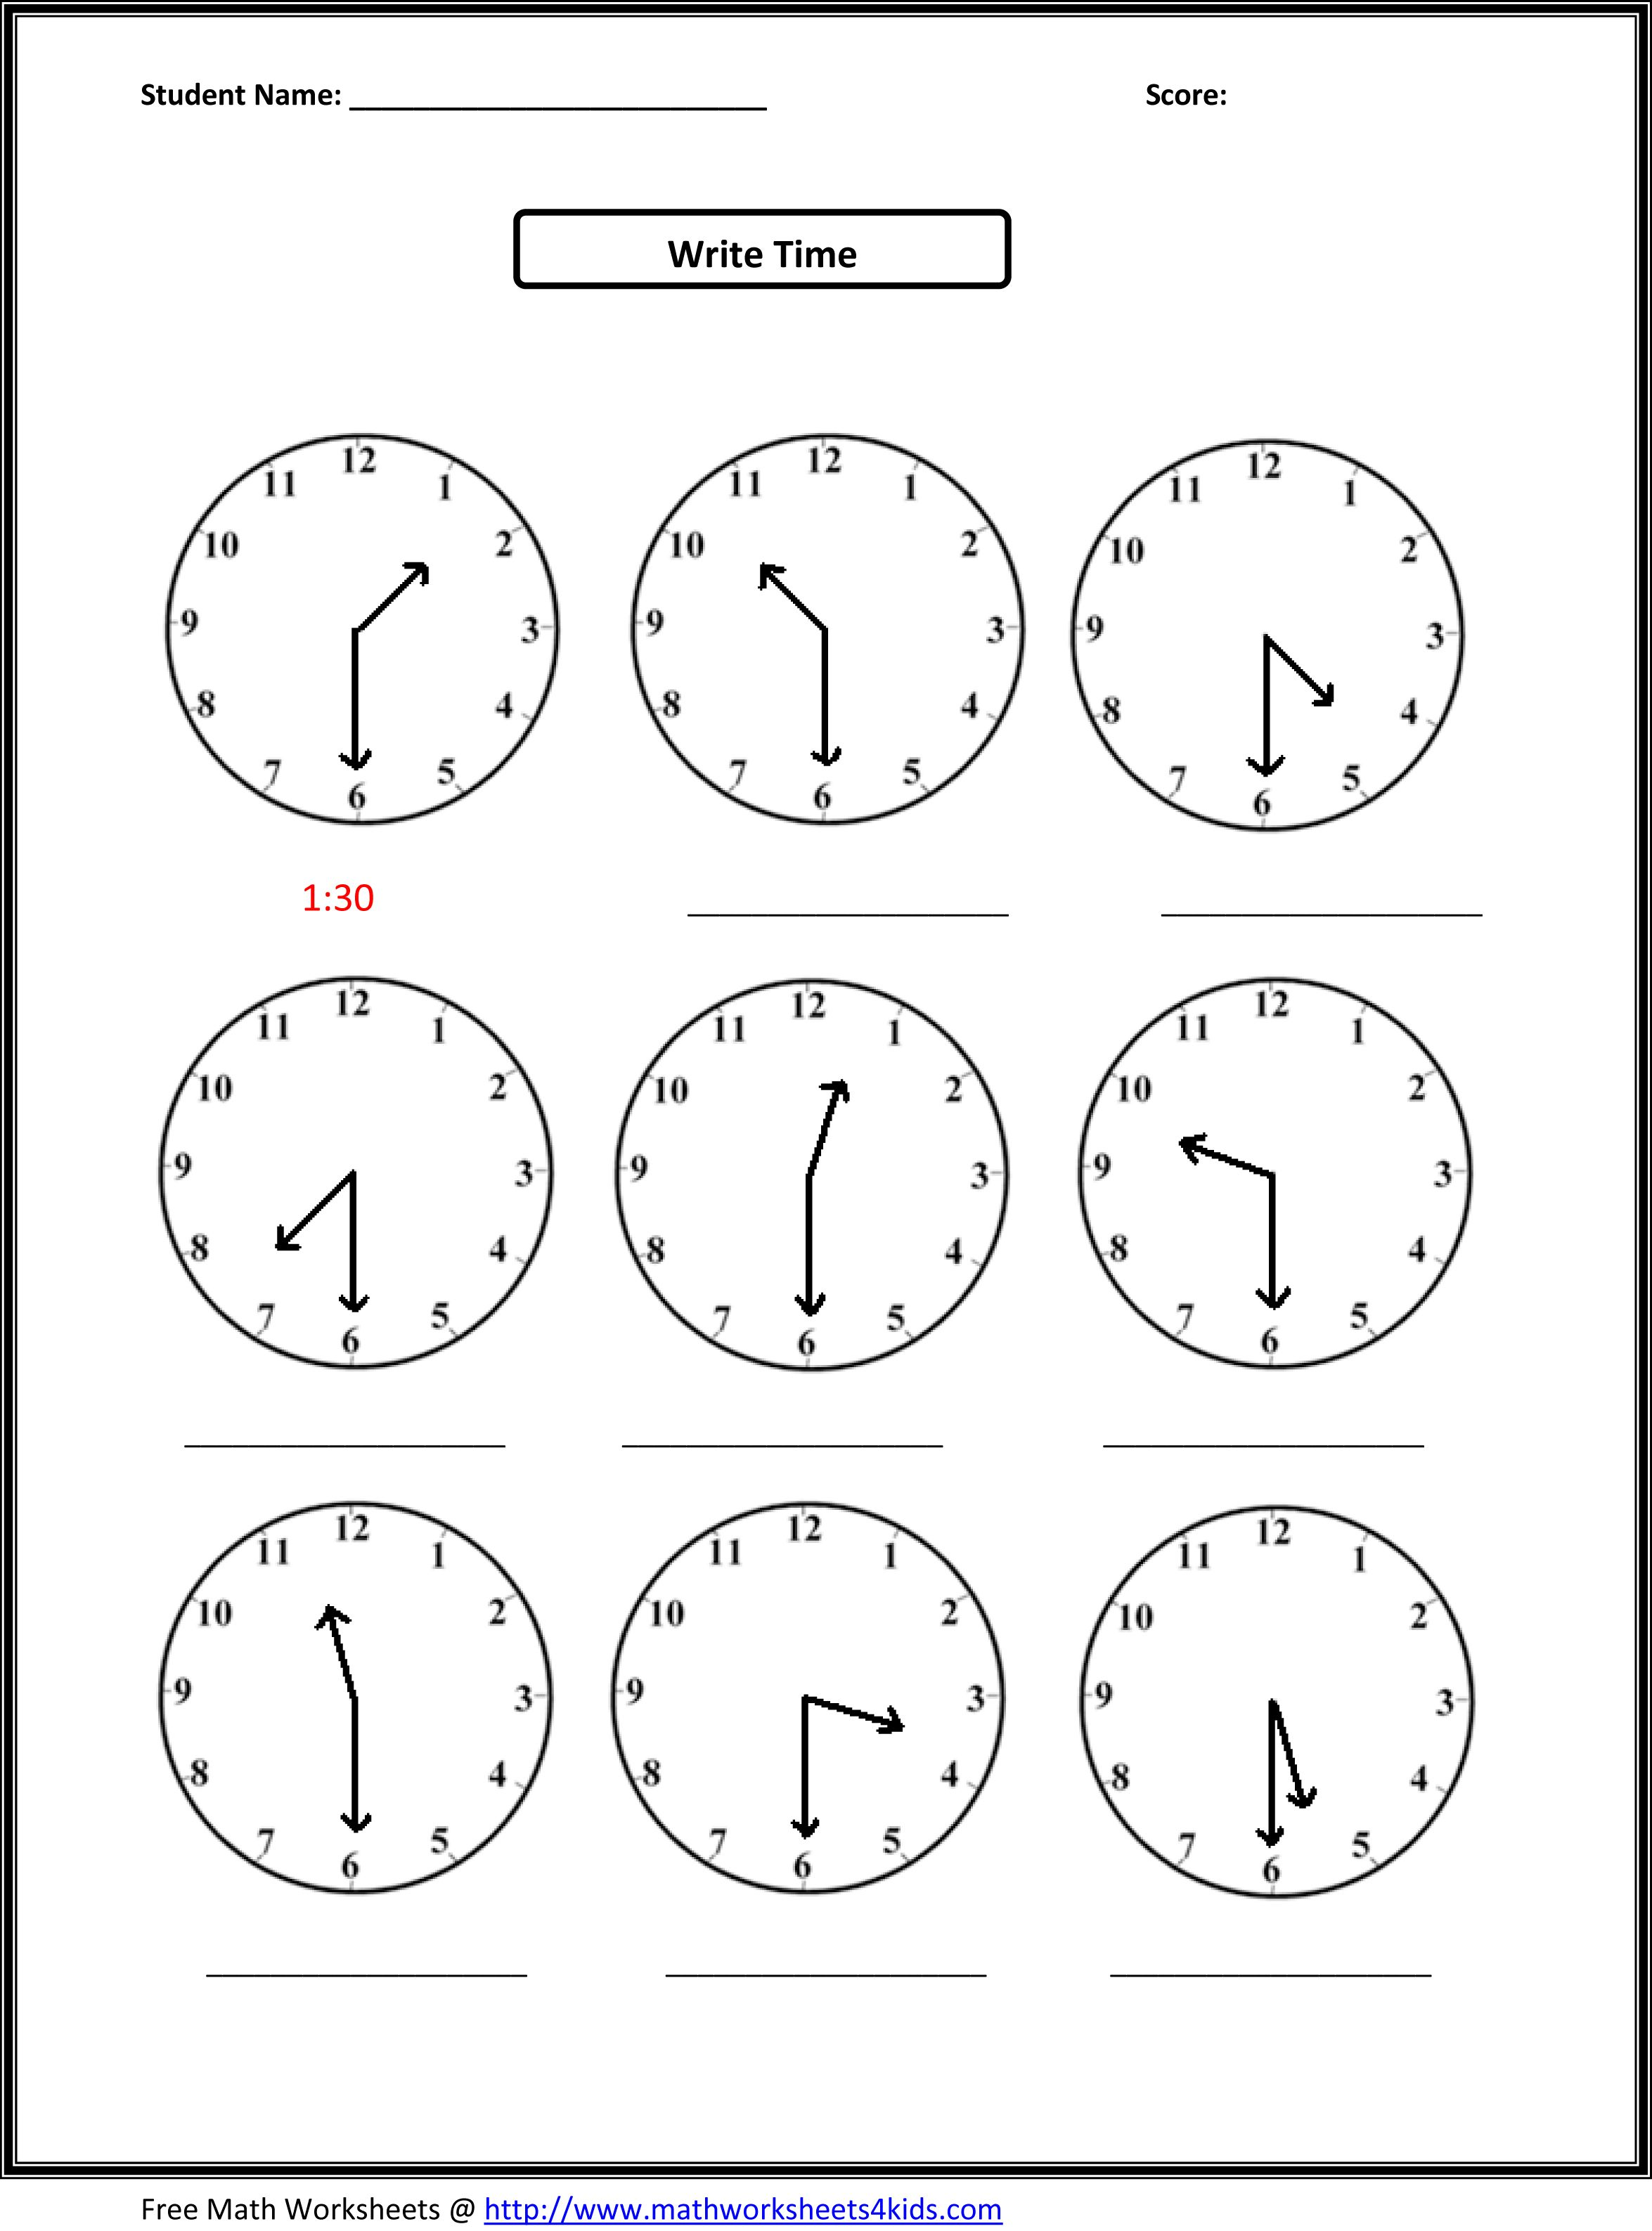 Proatmealus  Marvelous Worksheet On Time For Grade   Reocurent With Great Free Printable Telling Time Worksheets Nd Grade  Reocurent With Enchanting Data Representation Worksheets Also Bar Chart Worksheets Ks In Addition  Continents Worksheets And Using Commas In A Series Worksheets As Well As Adding Ed Worksheet Additionally Free Worksheets For Kindergarten Reading From Reocurentcom With Proatmealus  Great Worksheet On Time For Grade   Reocurent With Enchanting Free Printable Telling Time Worksheets Nd Grade  Reocurent And Marvelous Data Representation Worksheets Also Bar Chart Worksheets Ks In Addition  Continents Worksheets From Reocurentcom